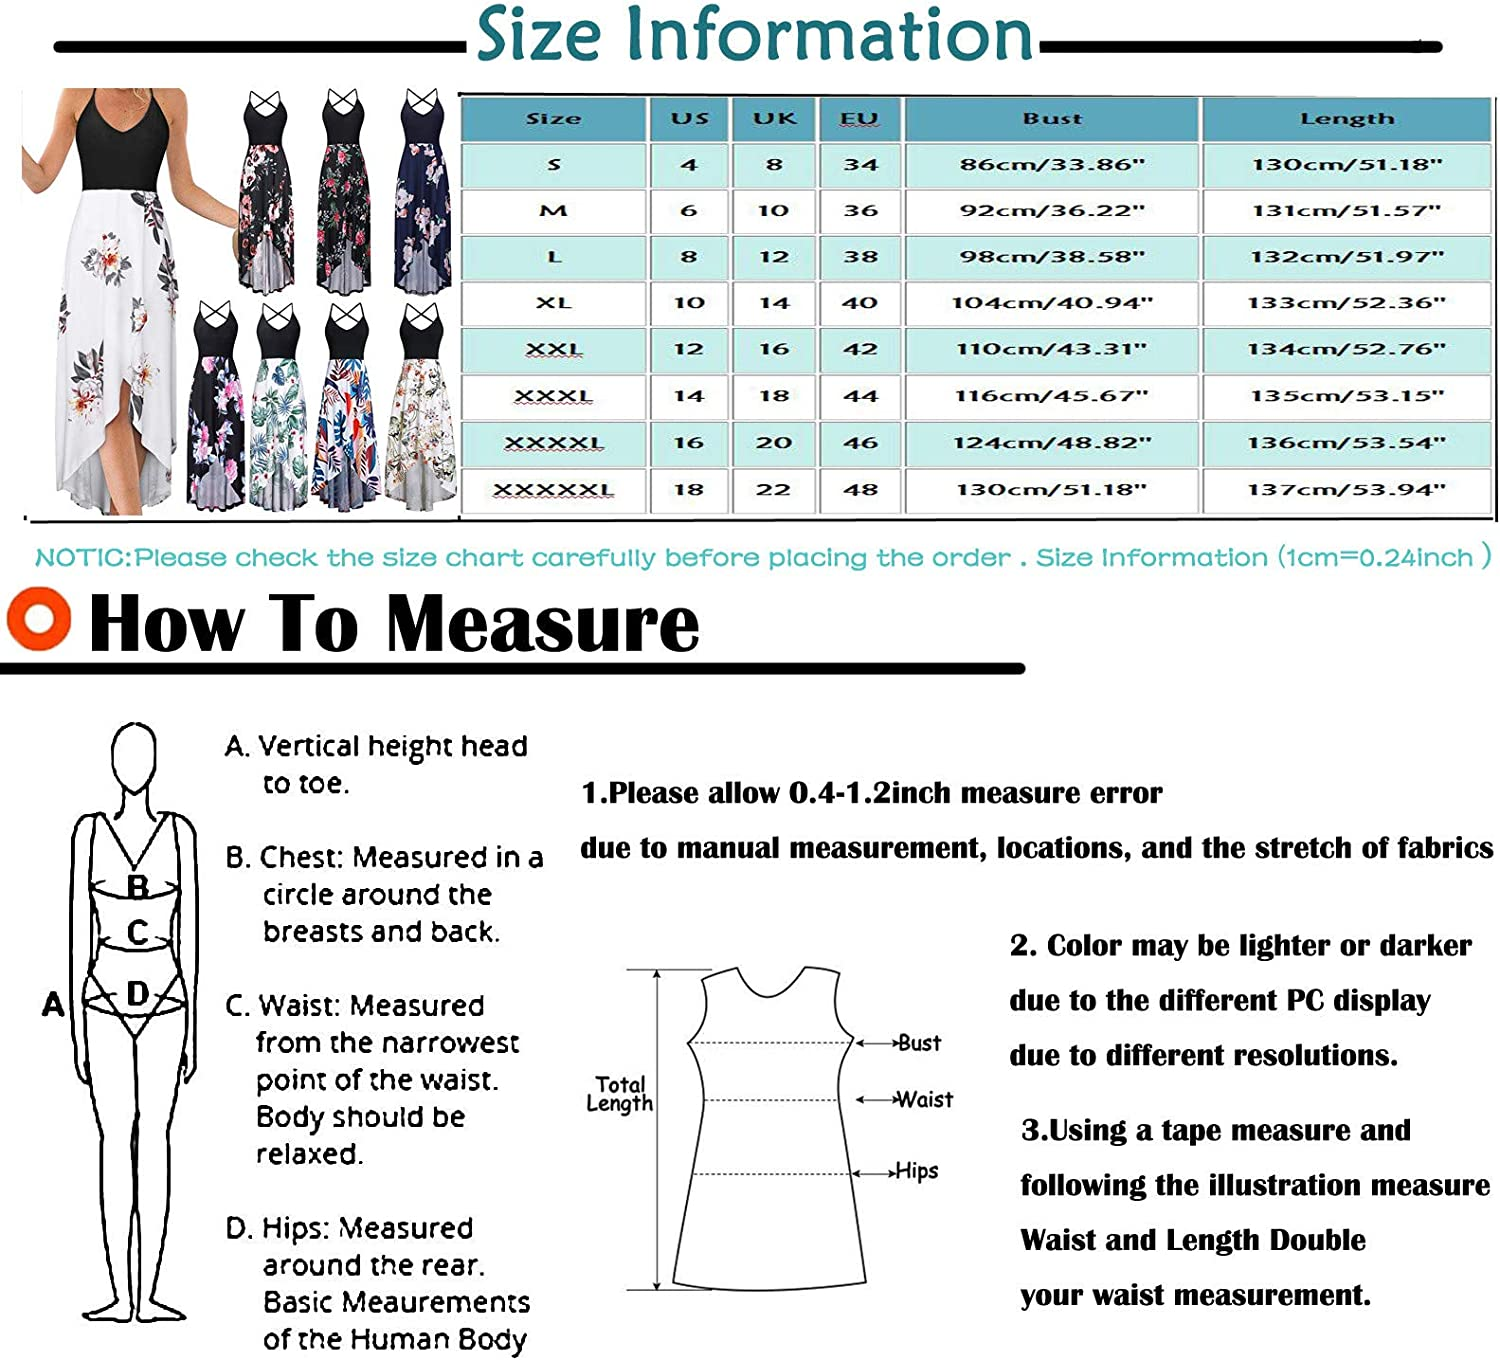 ONHUON Casual Dresses for Women,Womens Dresses Summer Dress Solid Color V Neck Sleeveless Loose Beach Party Long Dresses